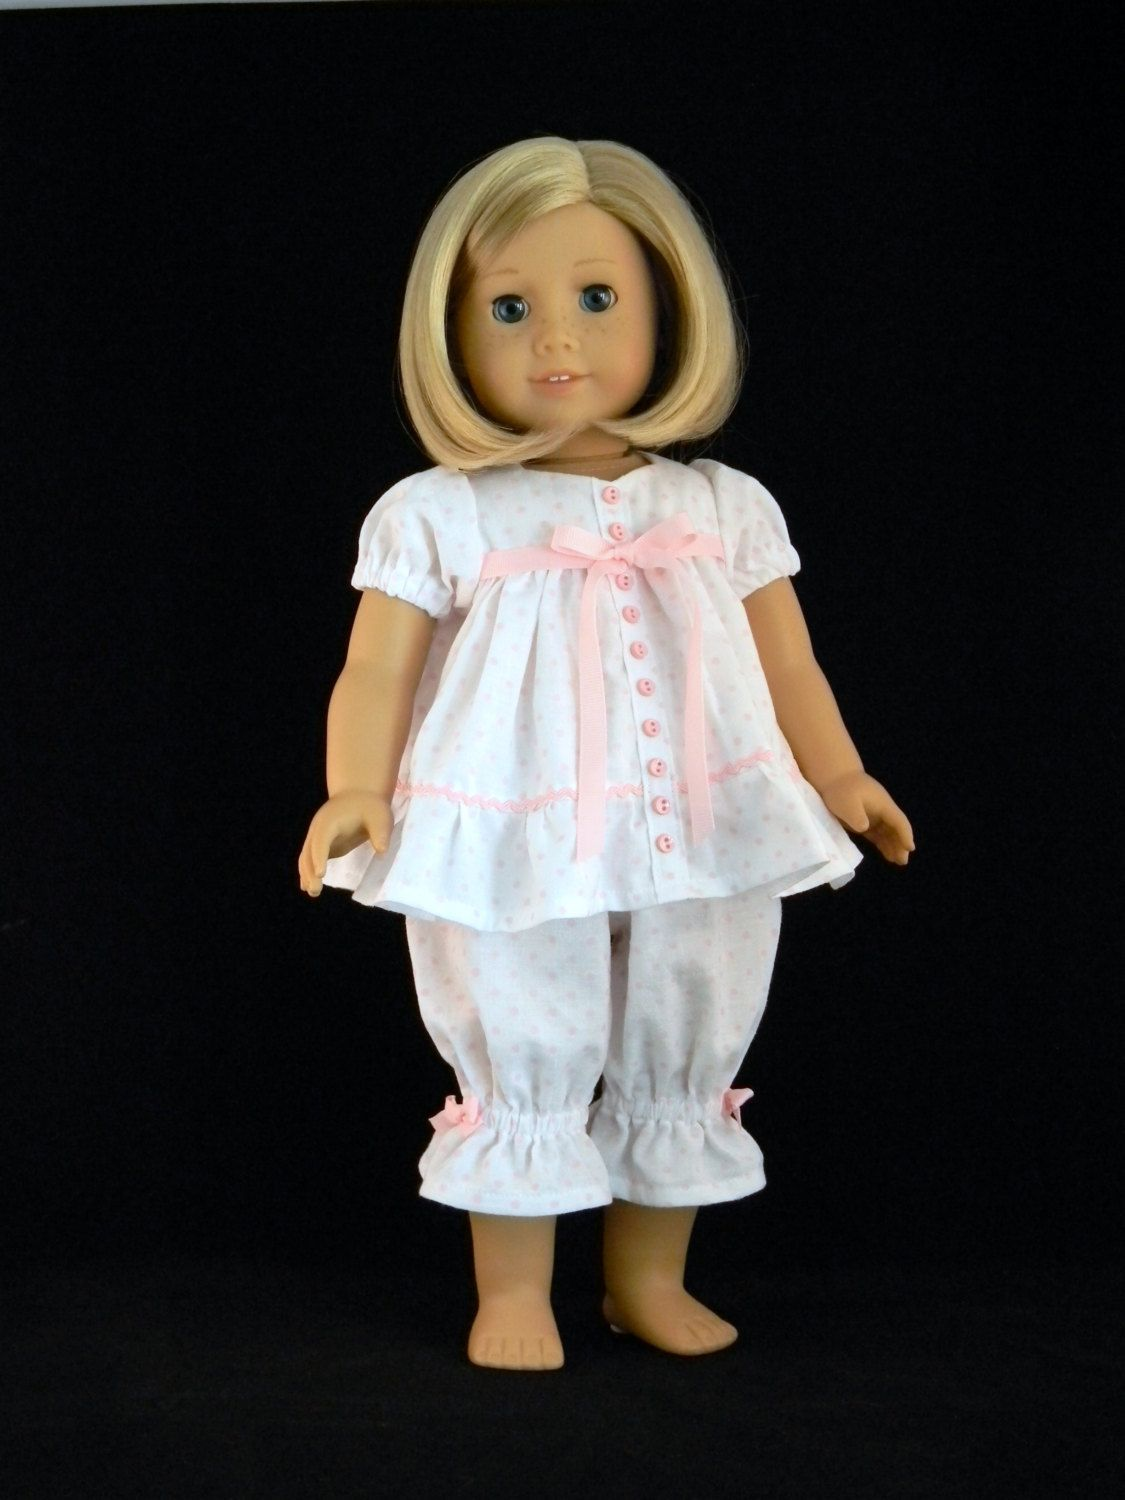 Baby doll pajamas for 18 American Girl Doll